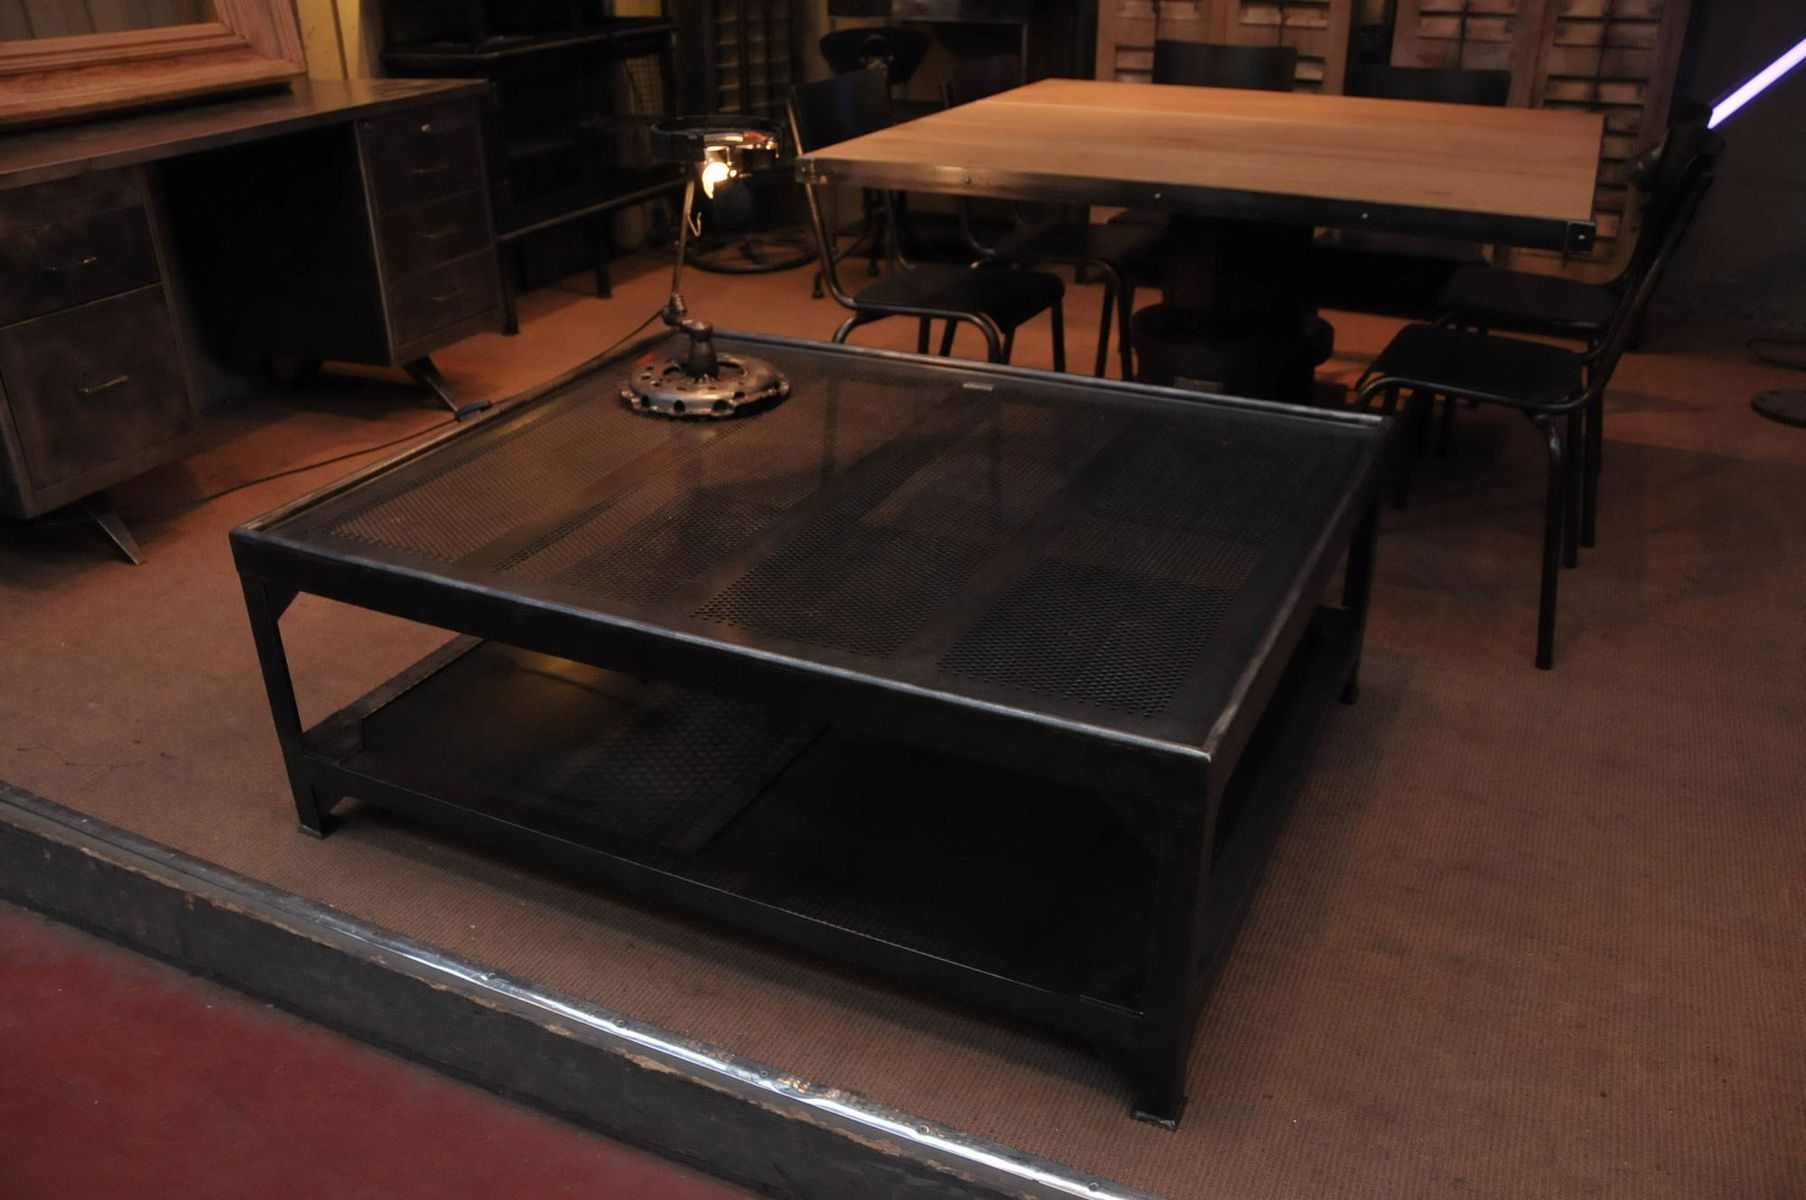 Industrial Dining Table for sale at Pamono : industrial dining table 6 from www.pamono.co.uk size 1807 x 1200 jpeg 149kB